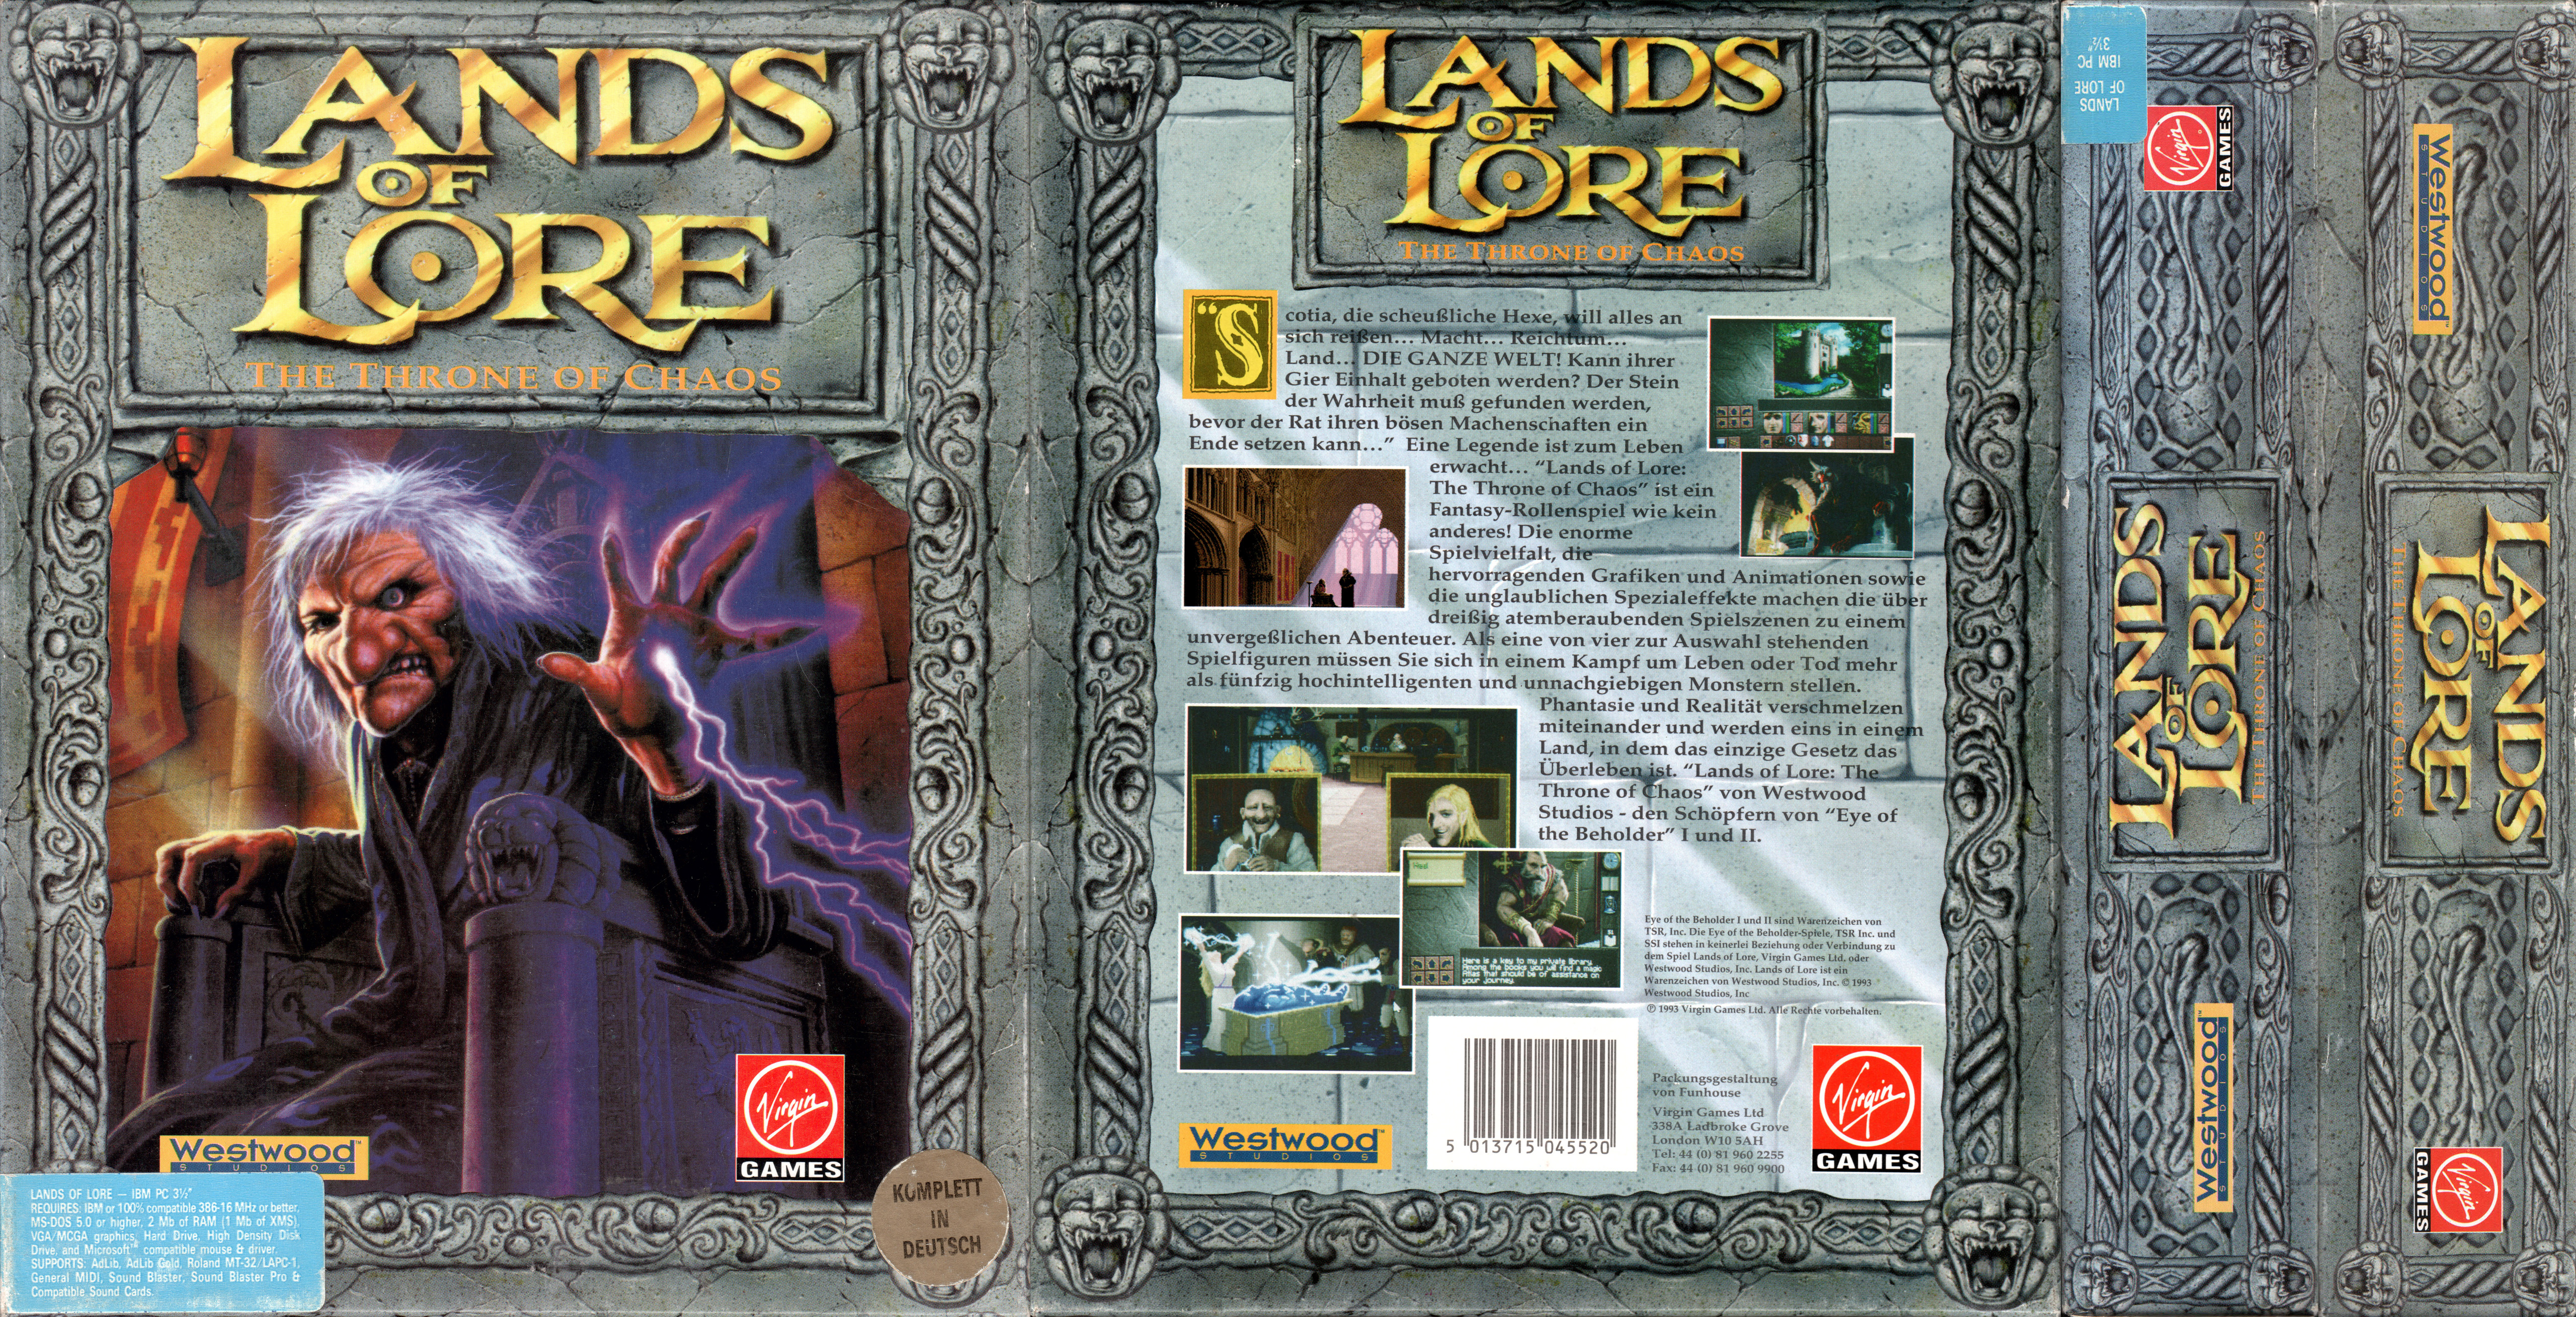 Big Box Collection: Papercraft model for Lands of Lore